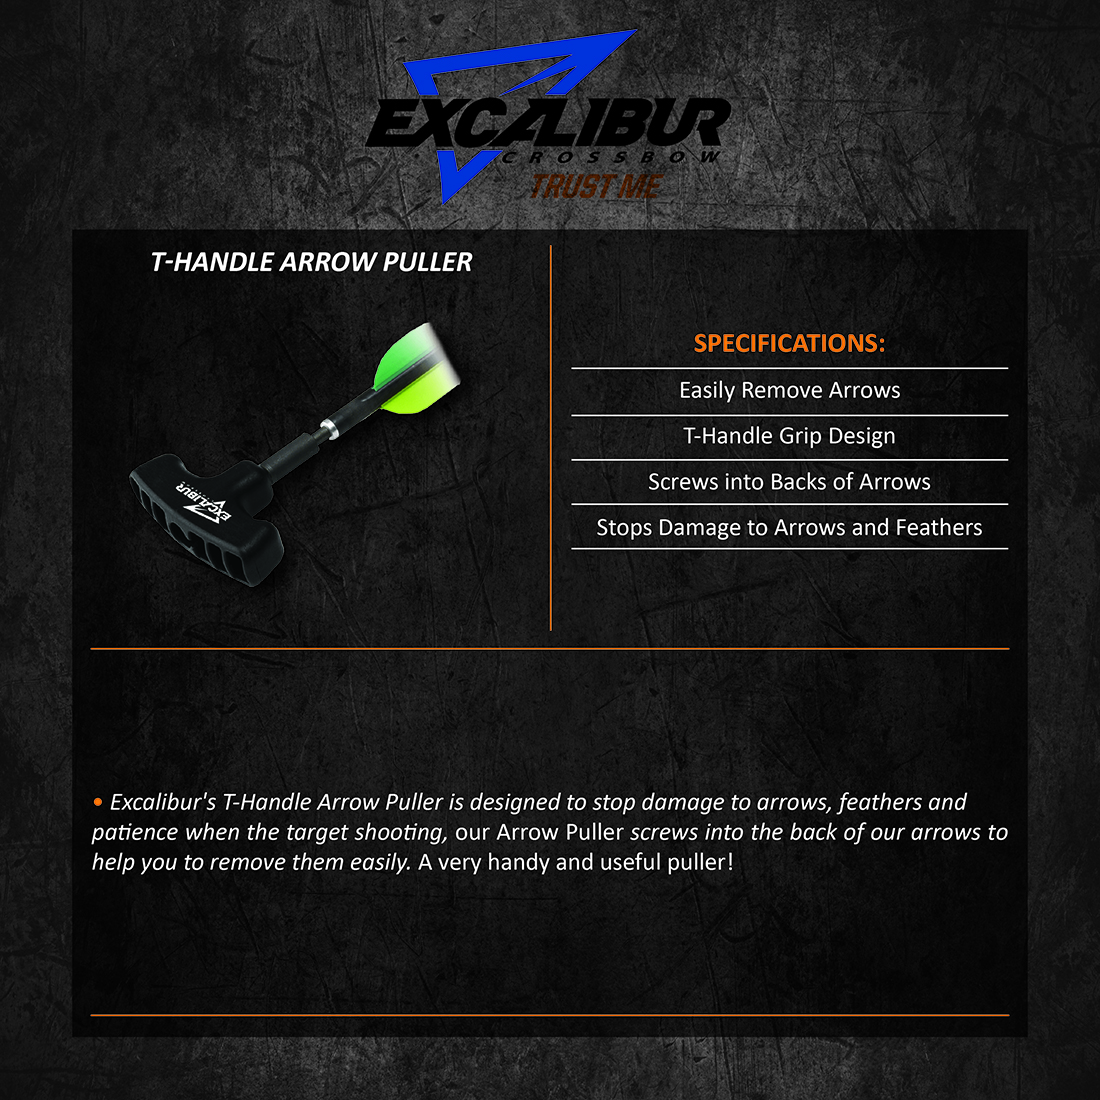 Excalibur_T_Handle_Arrow_Puller_Product_Description